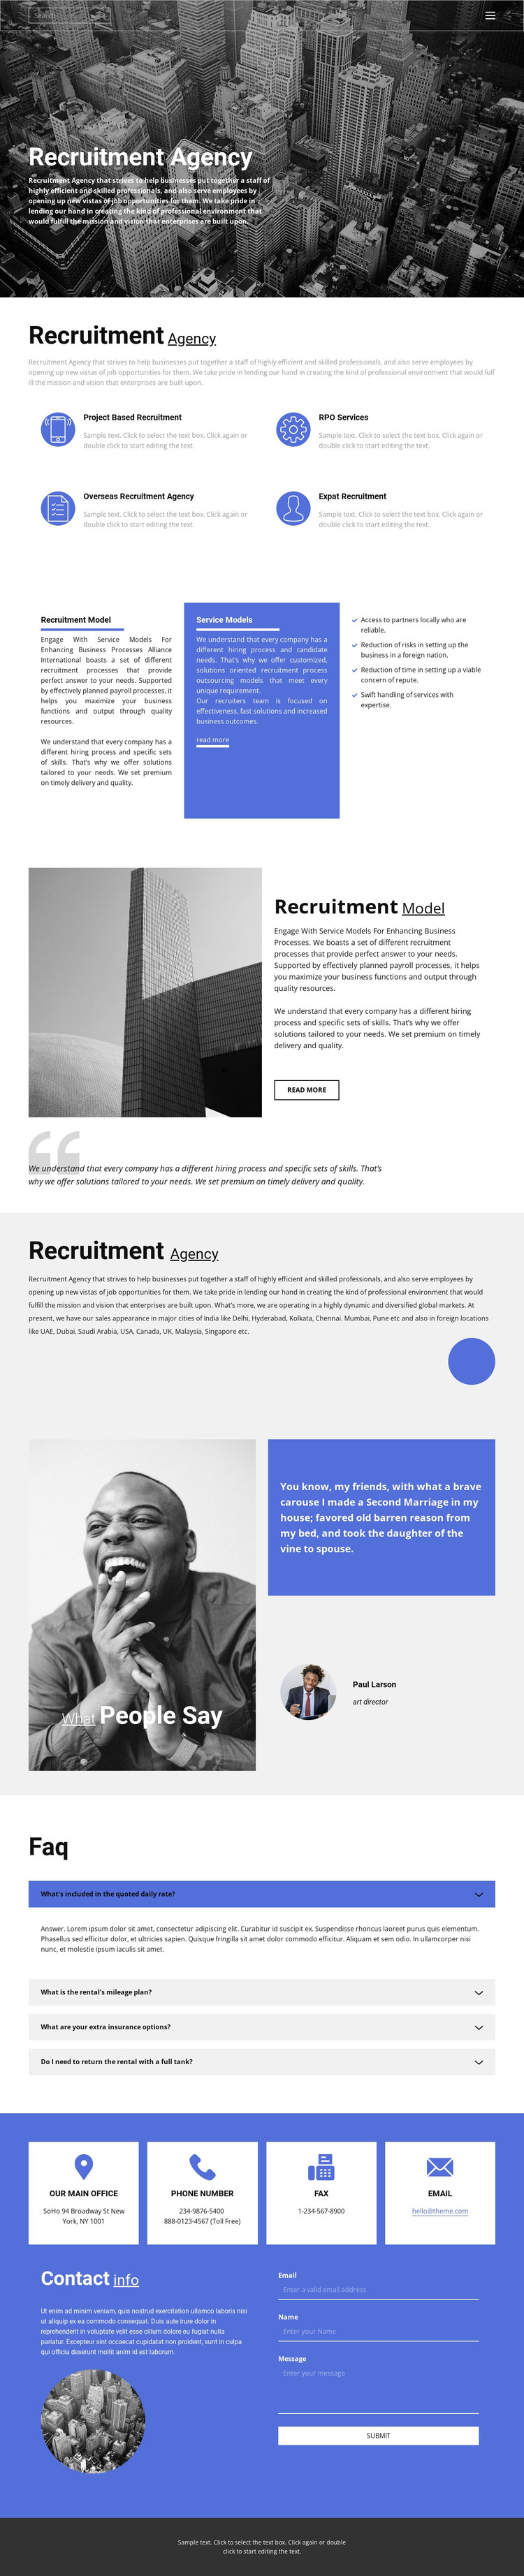 Recruiting agency with good experience Web Design